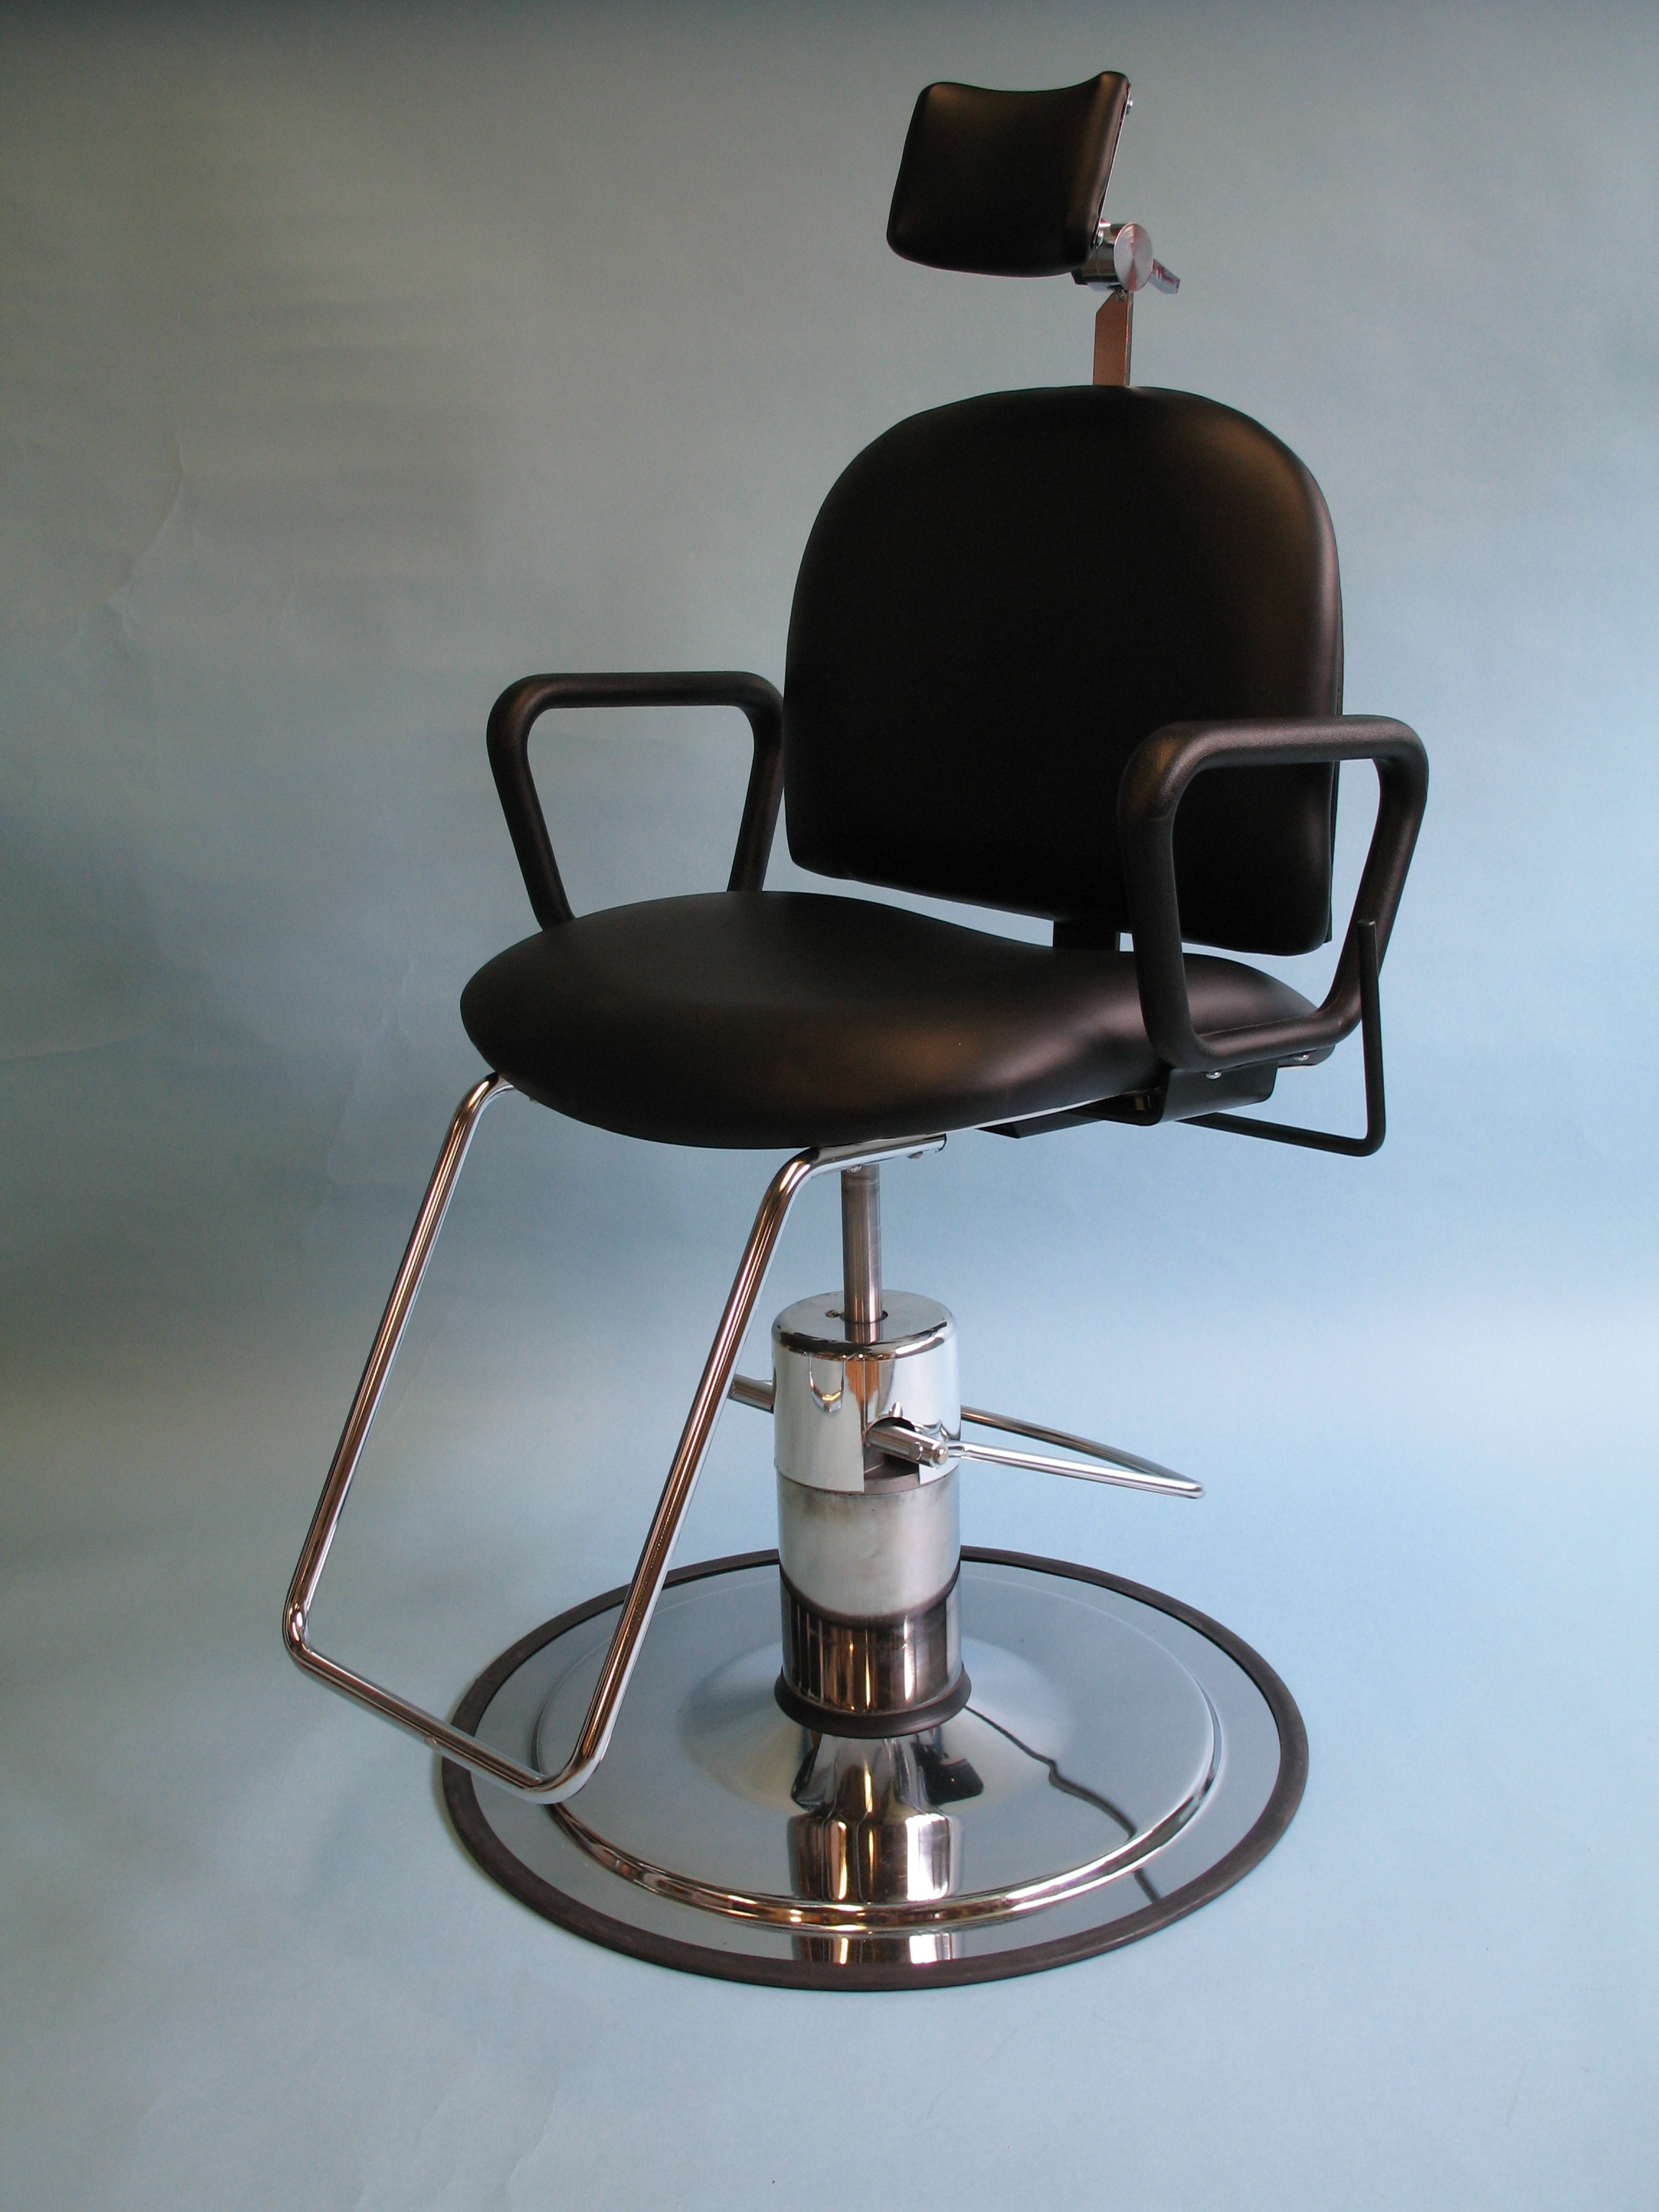 Hydraulic Chairs Brandt Industries Chairs Treatment Hydraulic